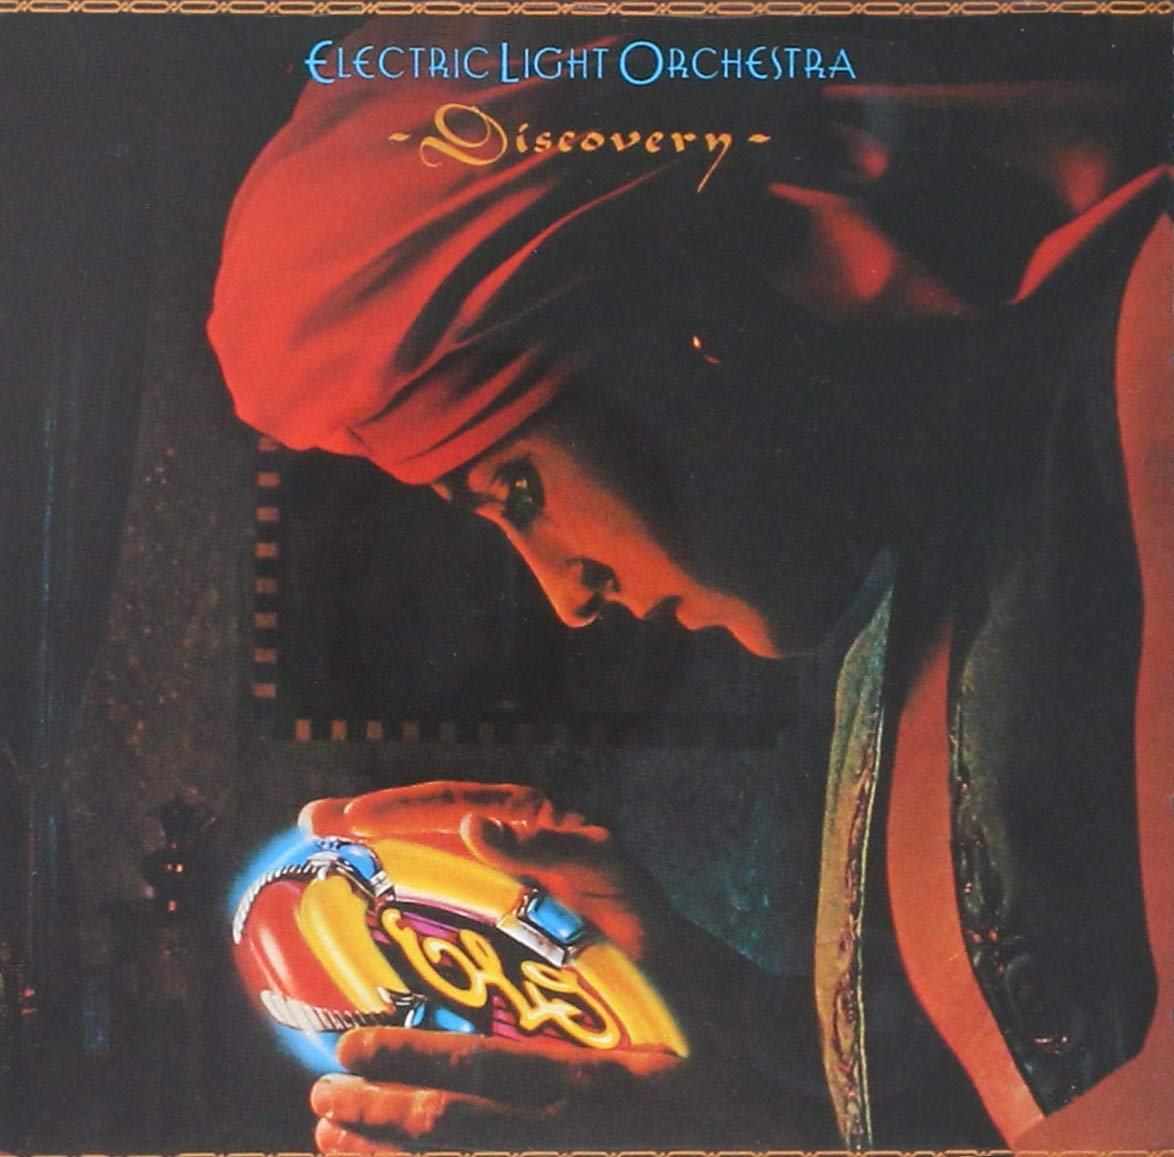 Electric Light Orchestra - Discovery (1979) [FLAC] Download